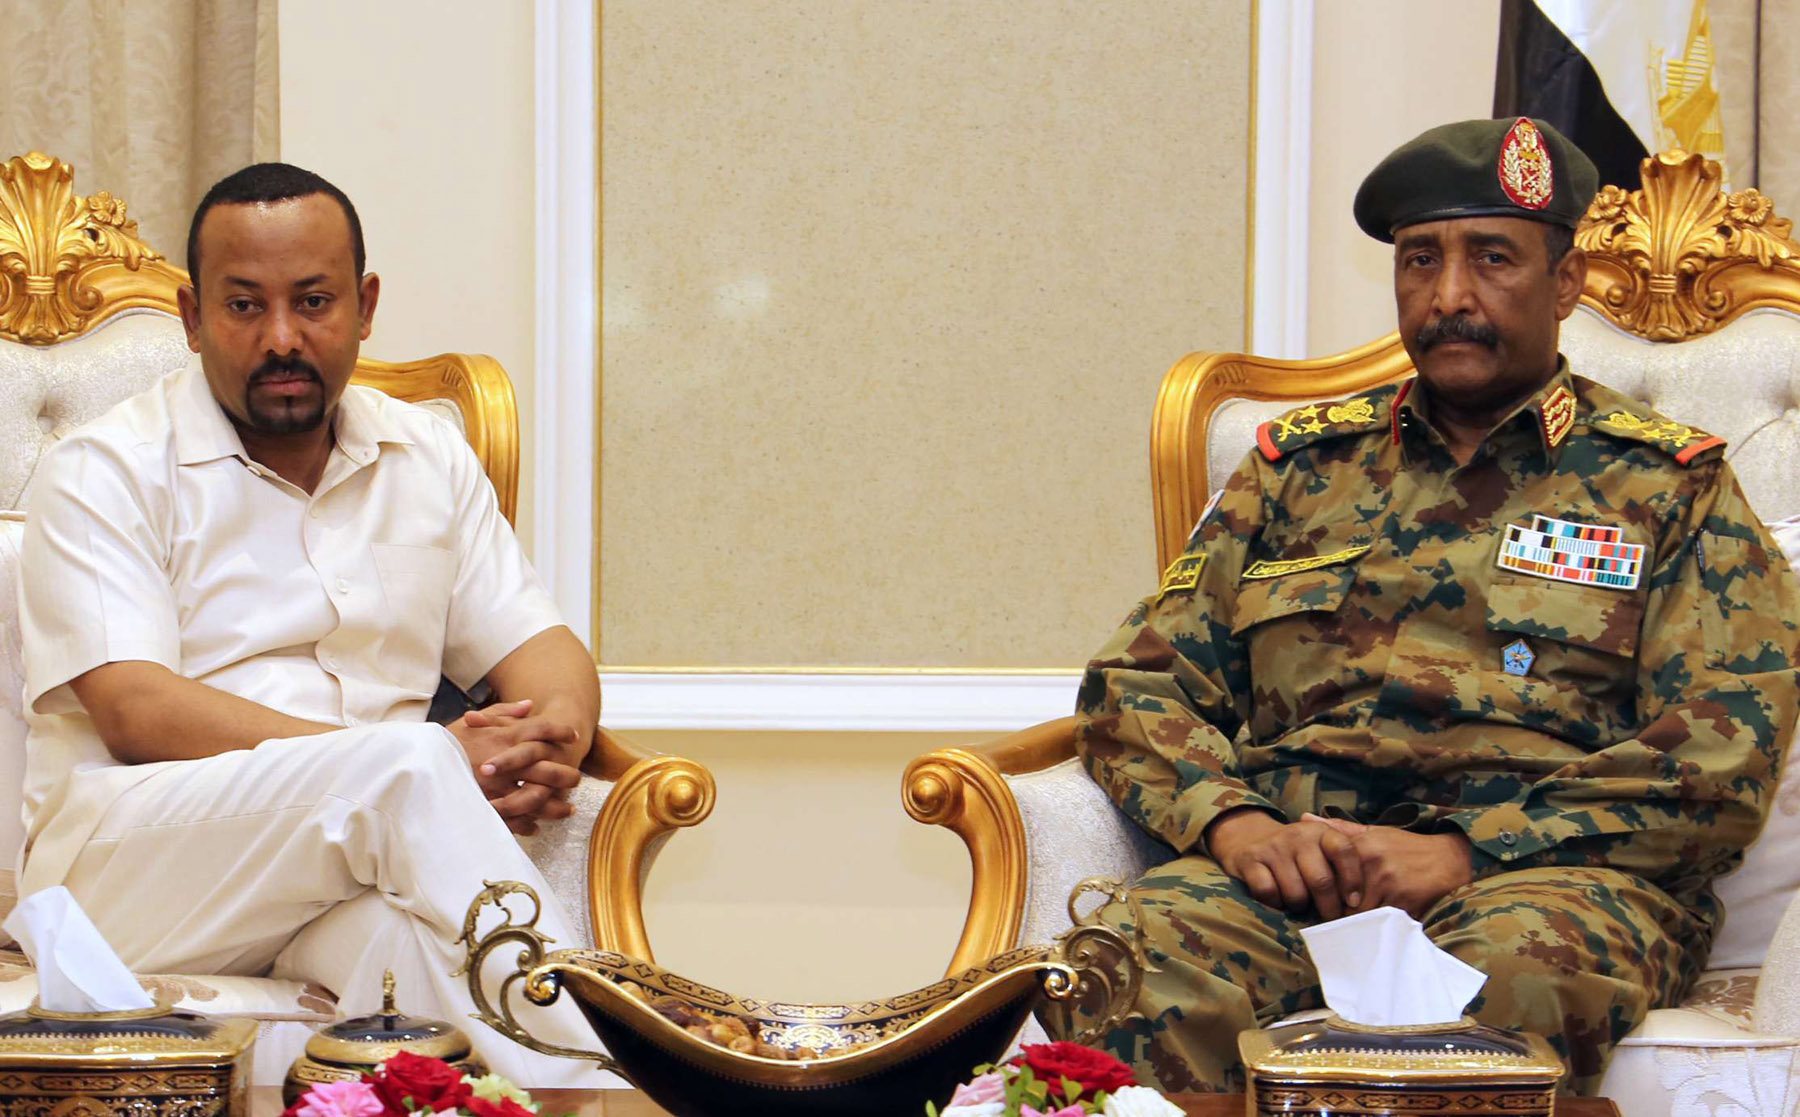 Ethiopian Prime Minister Abiy Ahmed (L) meets with the head of Sudan's ruling Military Council General Abdel Fattah al-Burhan (R), in Khartoum, June 7. (AFP)